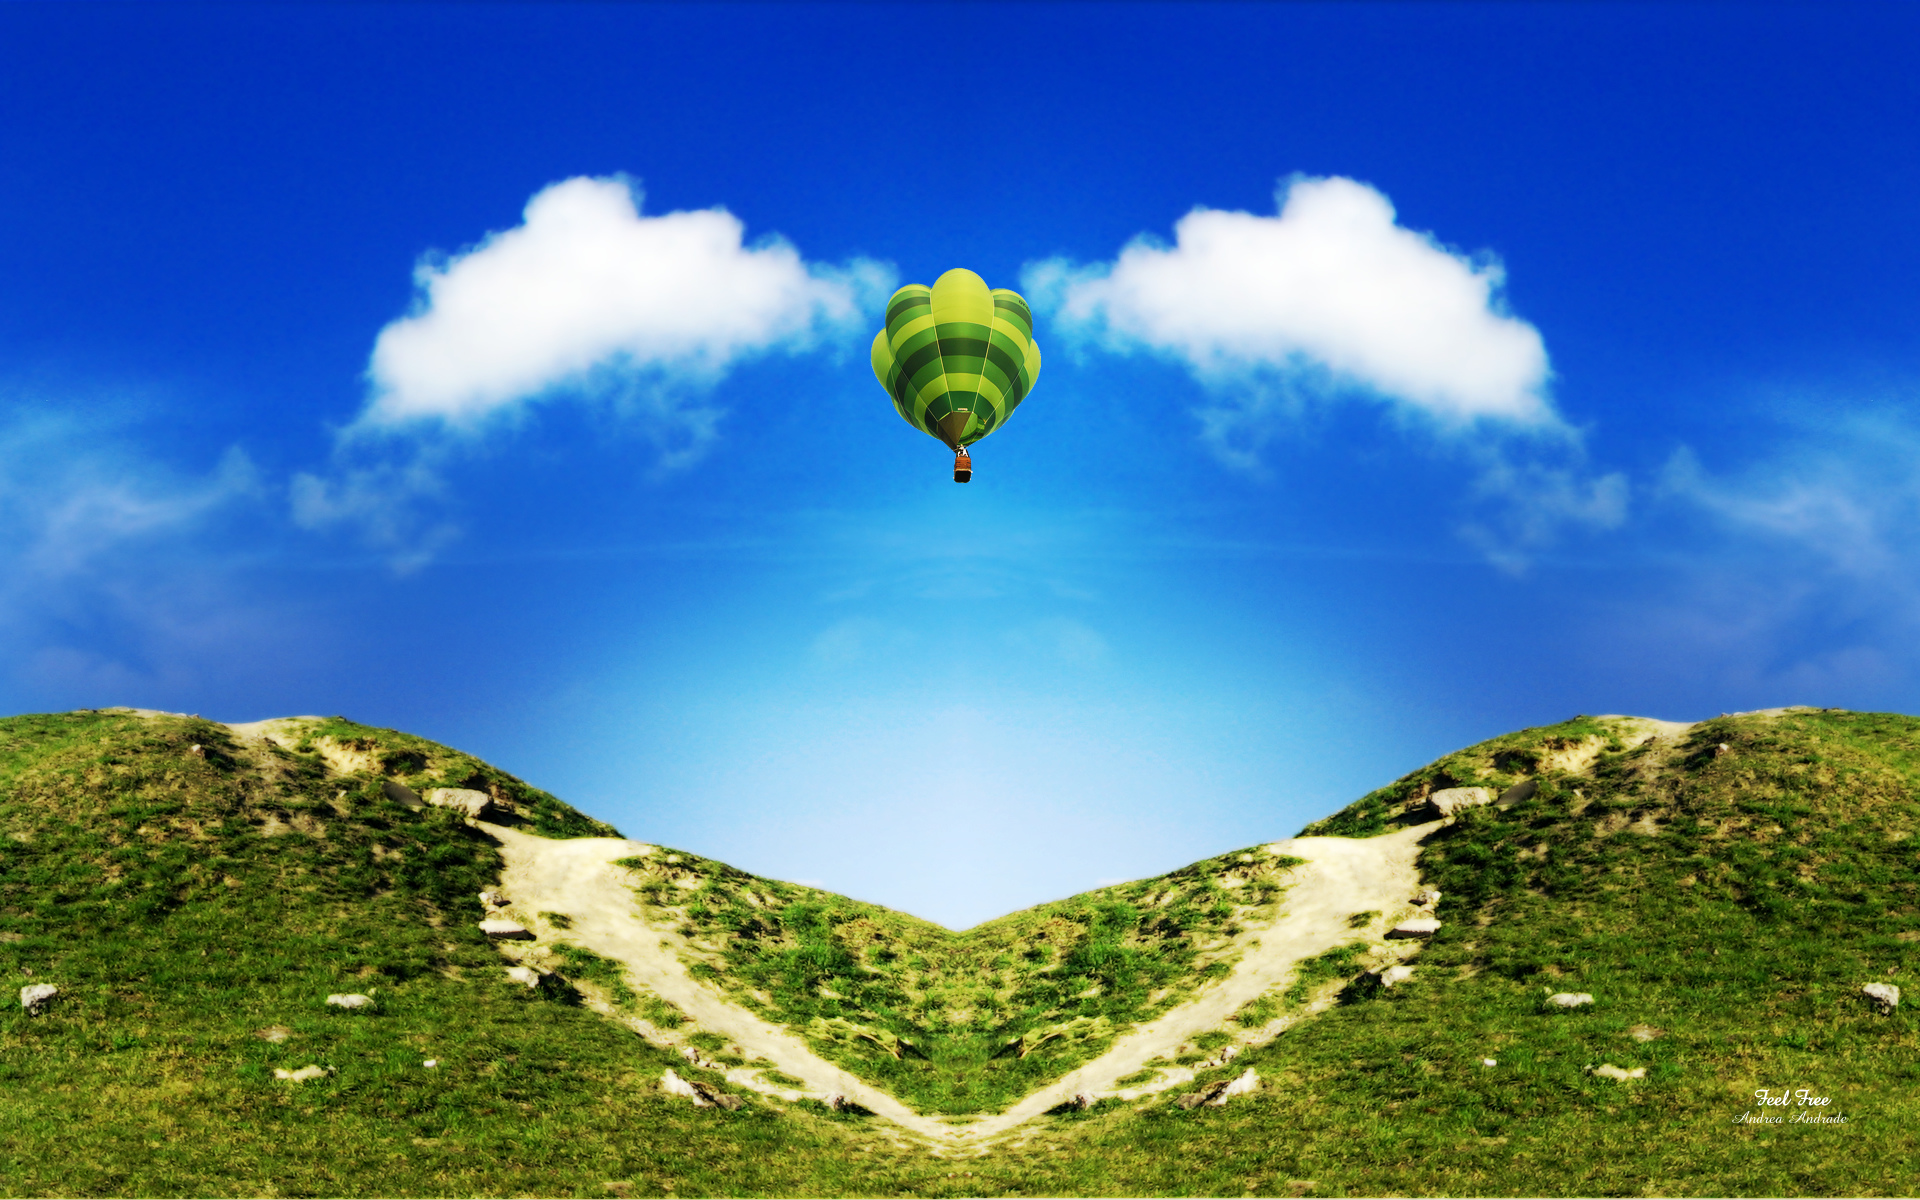 Most Inspiring Wallpaper Love Green - Love%20On%20Earth866301522  Perfect Image Reference_621583.jpg